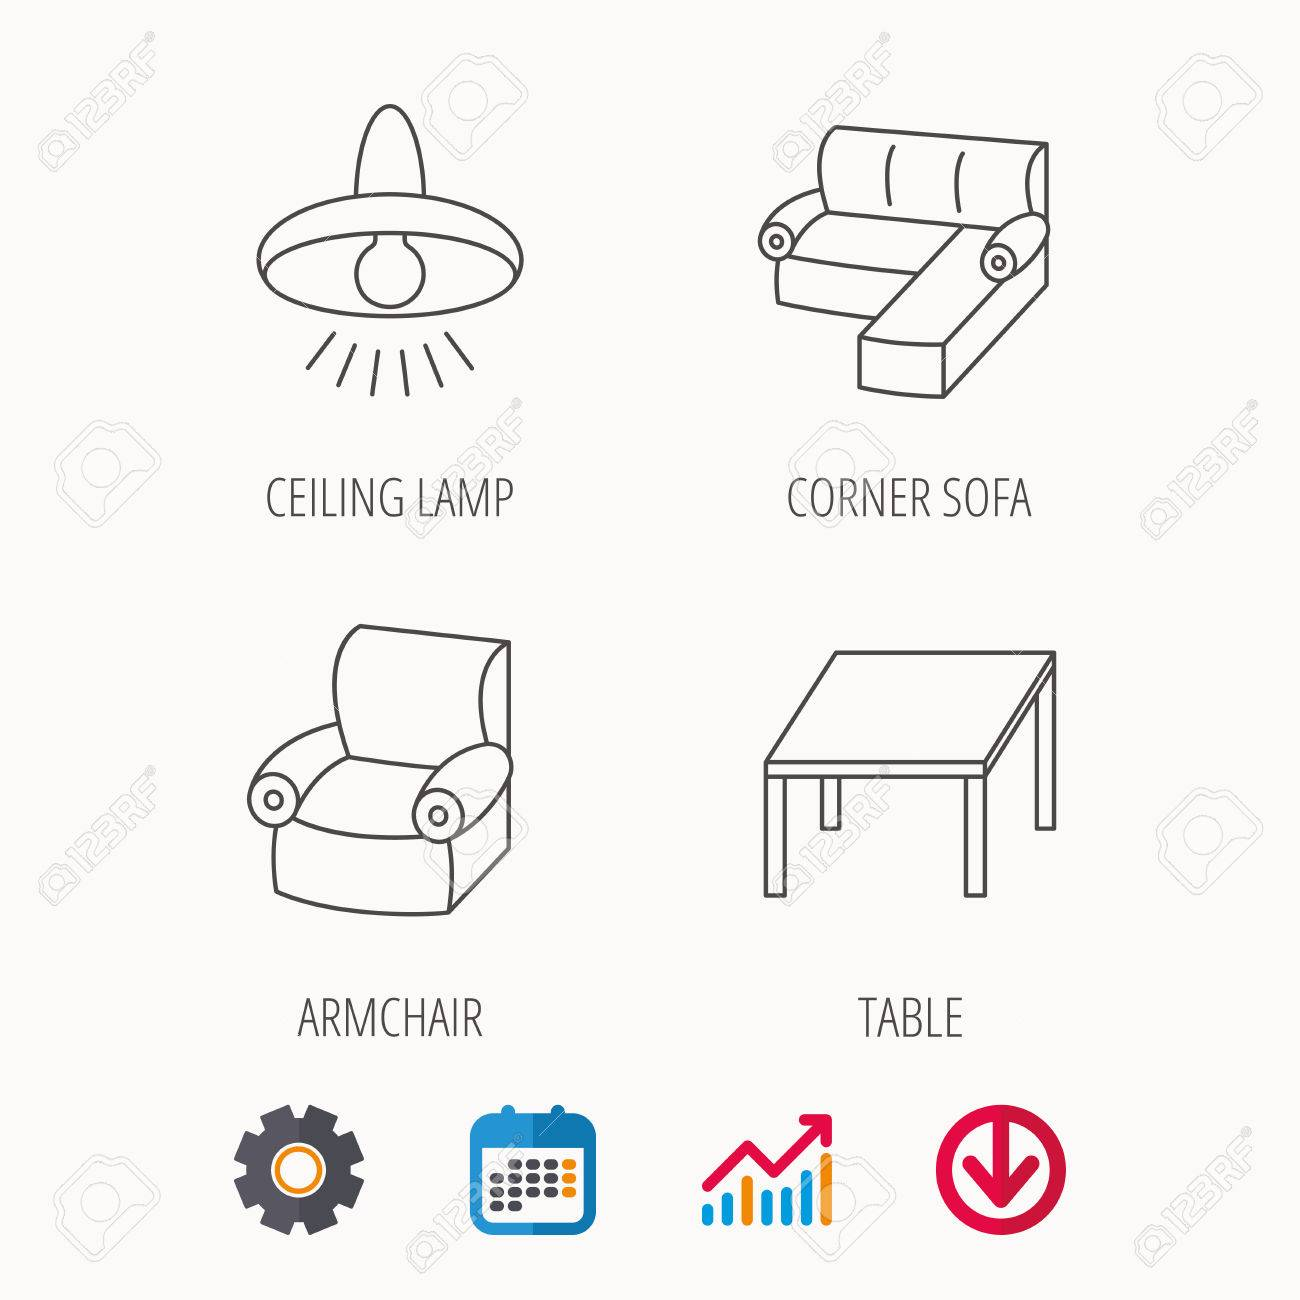 hight resolution of corner sofa table and armchair icons ceiling lamp linear signs calendar graph